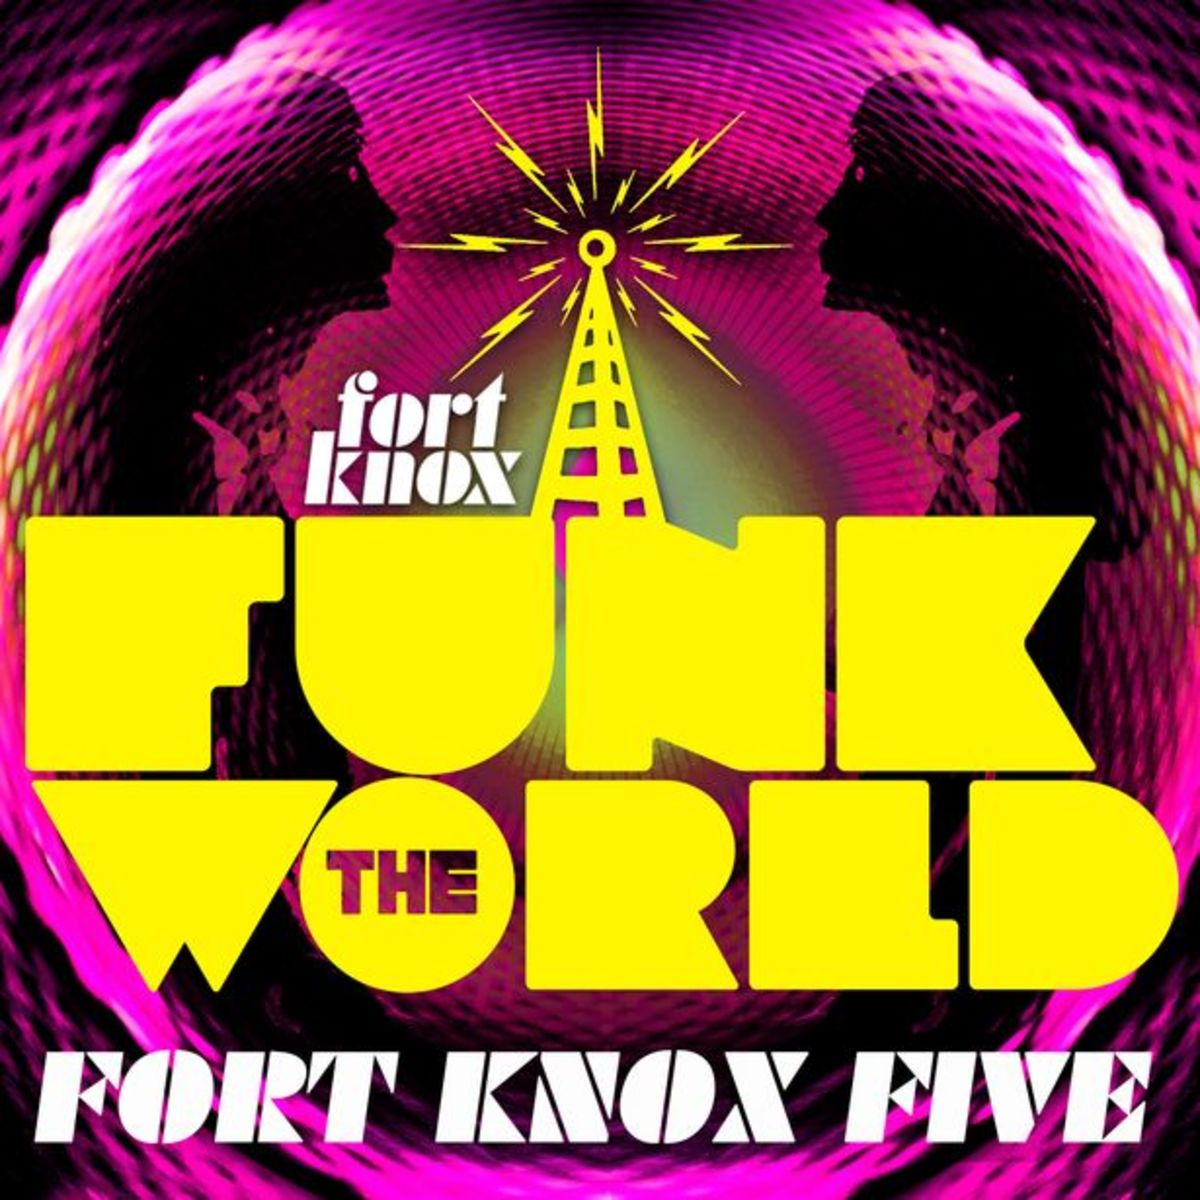 EDM Download: Fort Knox Five Is On The Mix Of Funk The World Vol. 16; File Under 'Their Re-Edit And Remix Game Is On Point'